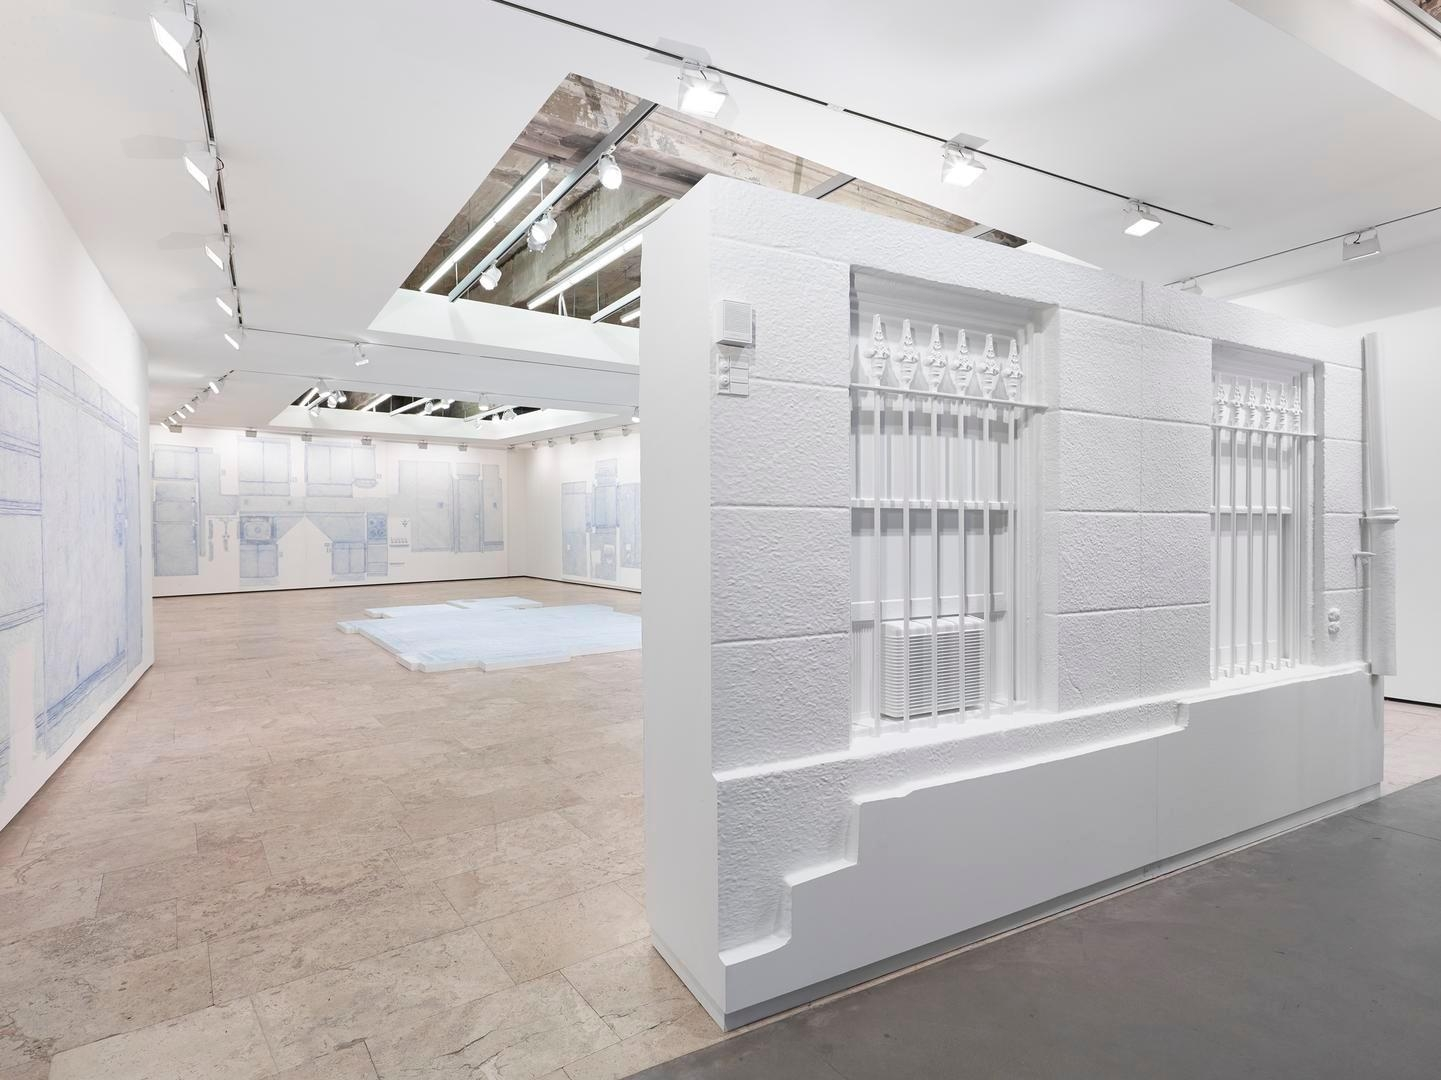 Drawings Installation view 3